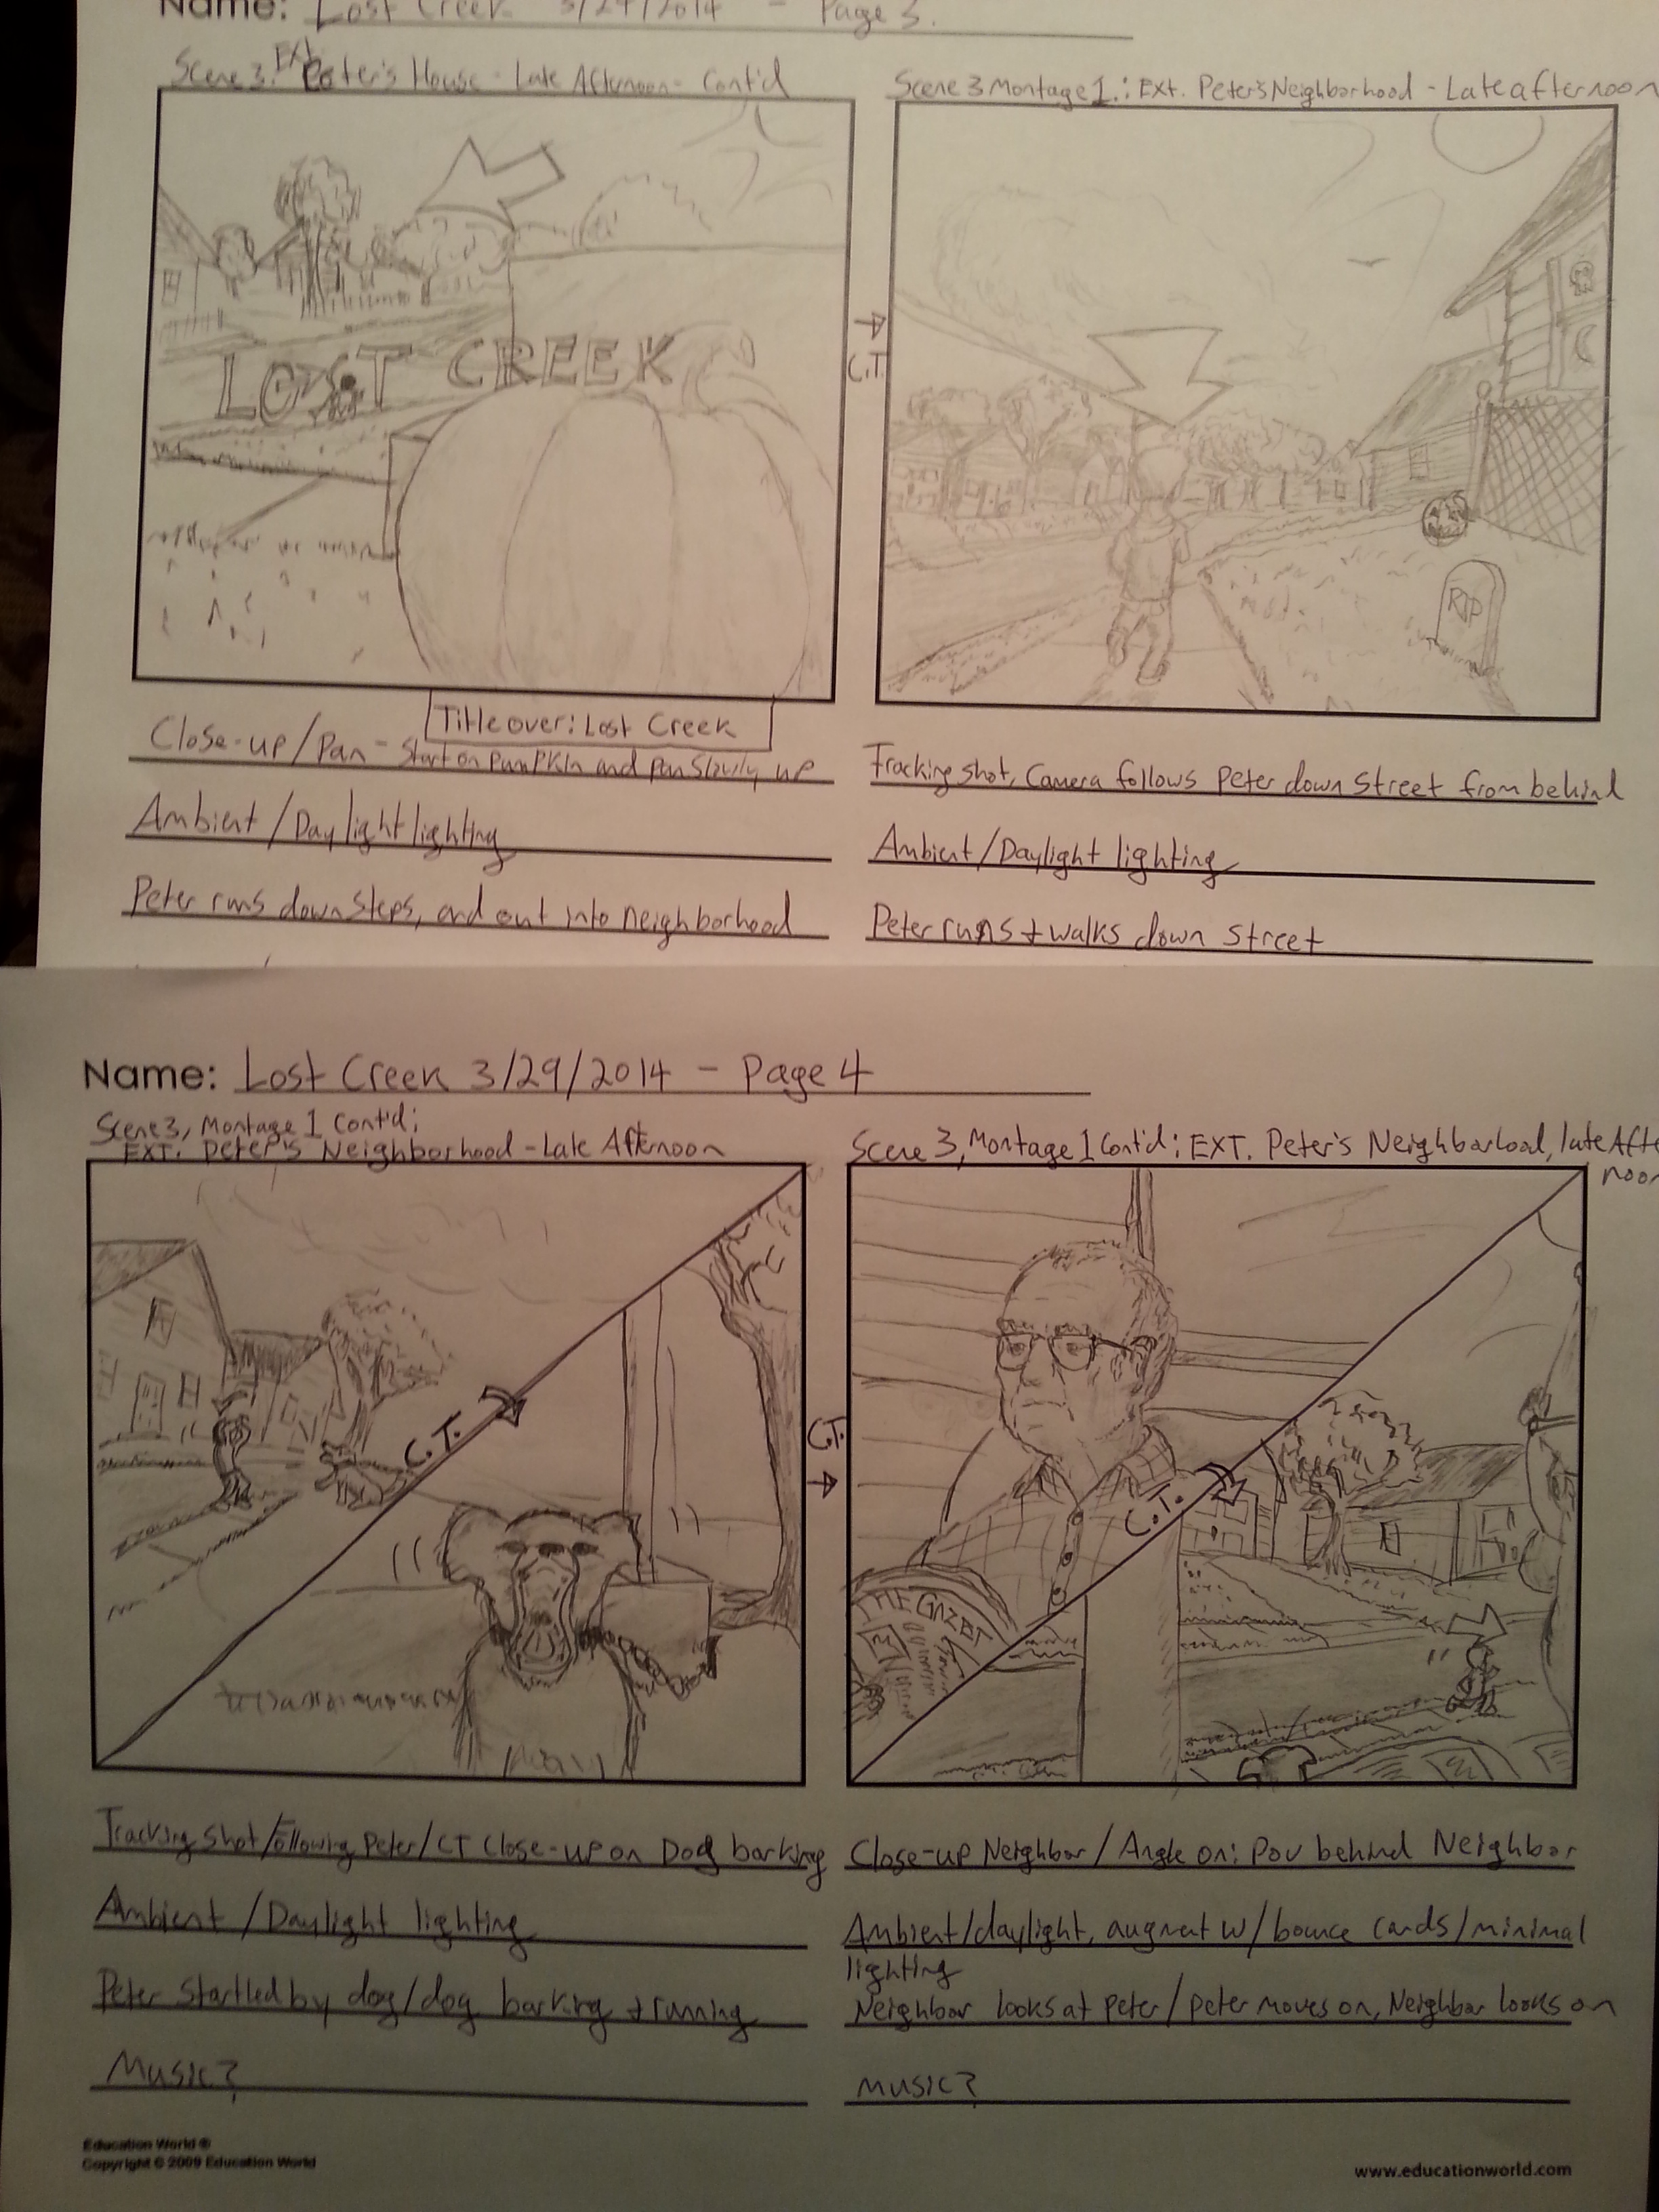 Storyboarding from Lost Creek!